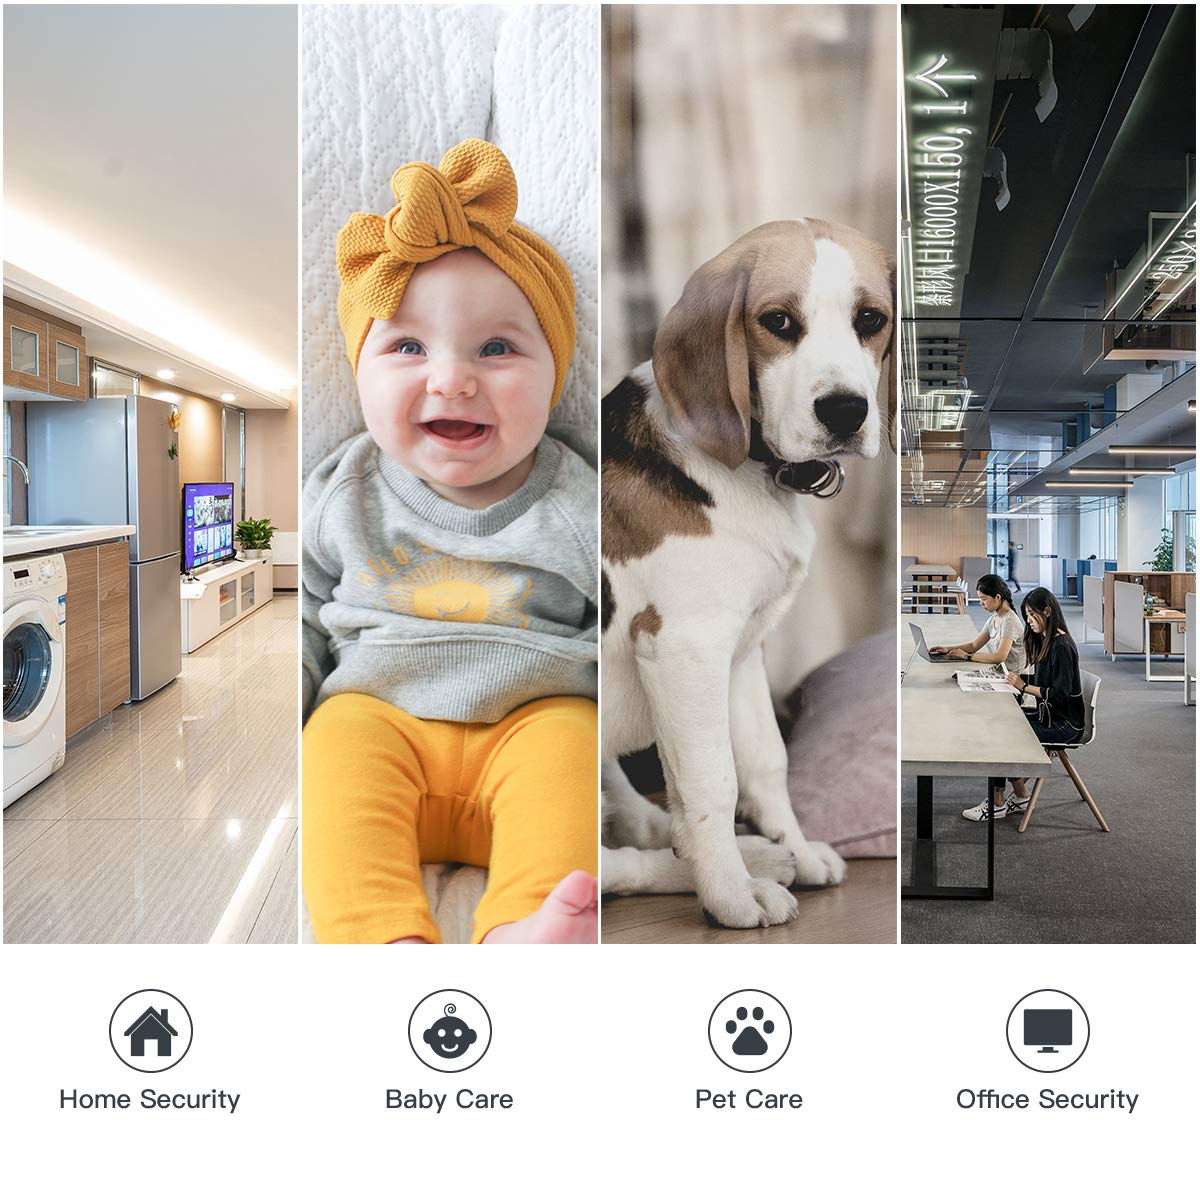 CACAGOO Video Baby Monitor with Camera and Audio, 2.4Ghz Security Wifi Camera, Home IP Camera with Night Vision/Motion Detection, Remote Monitor with iOS, Android App - Cloud Service Available by CACAGOO